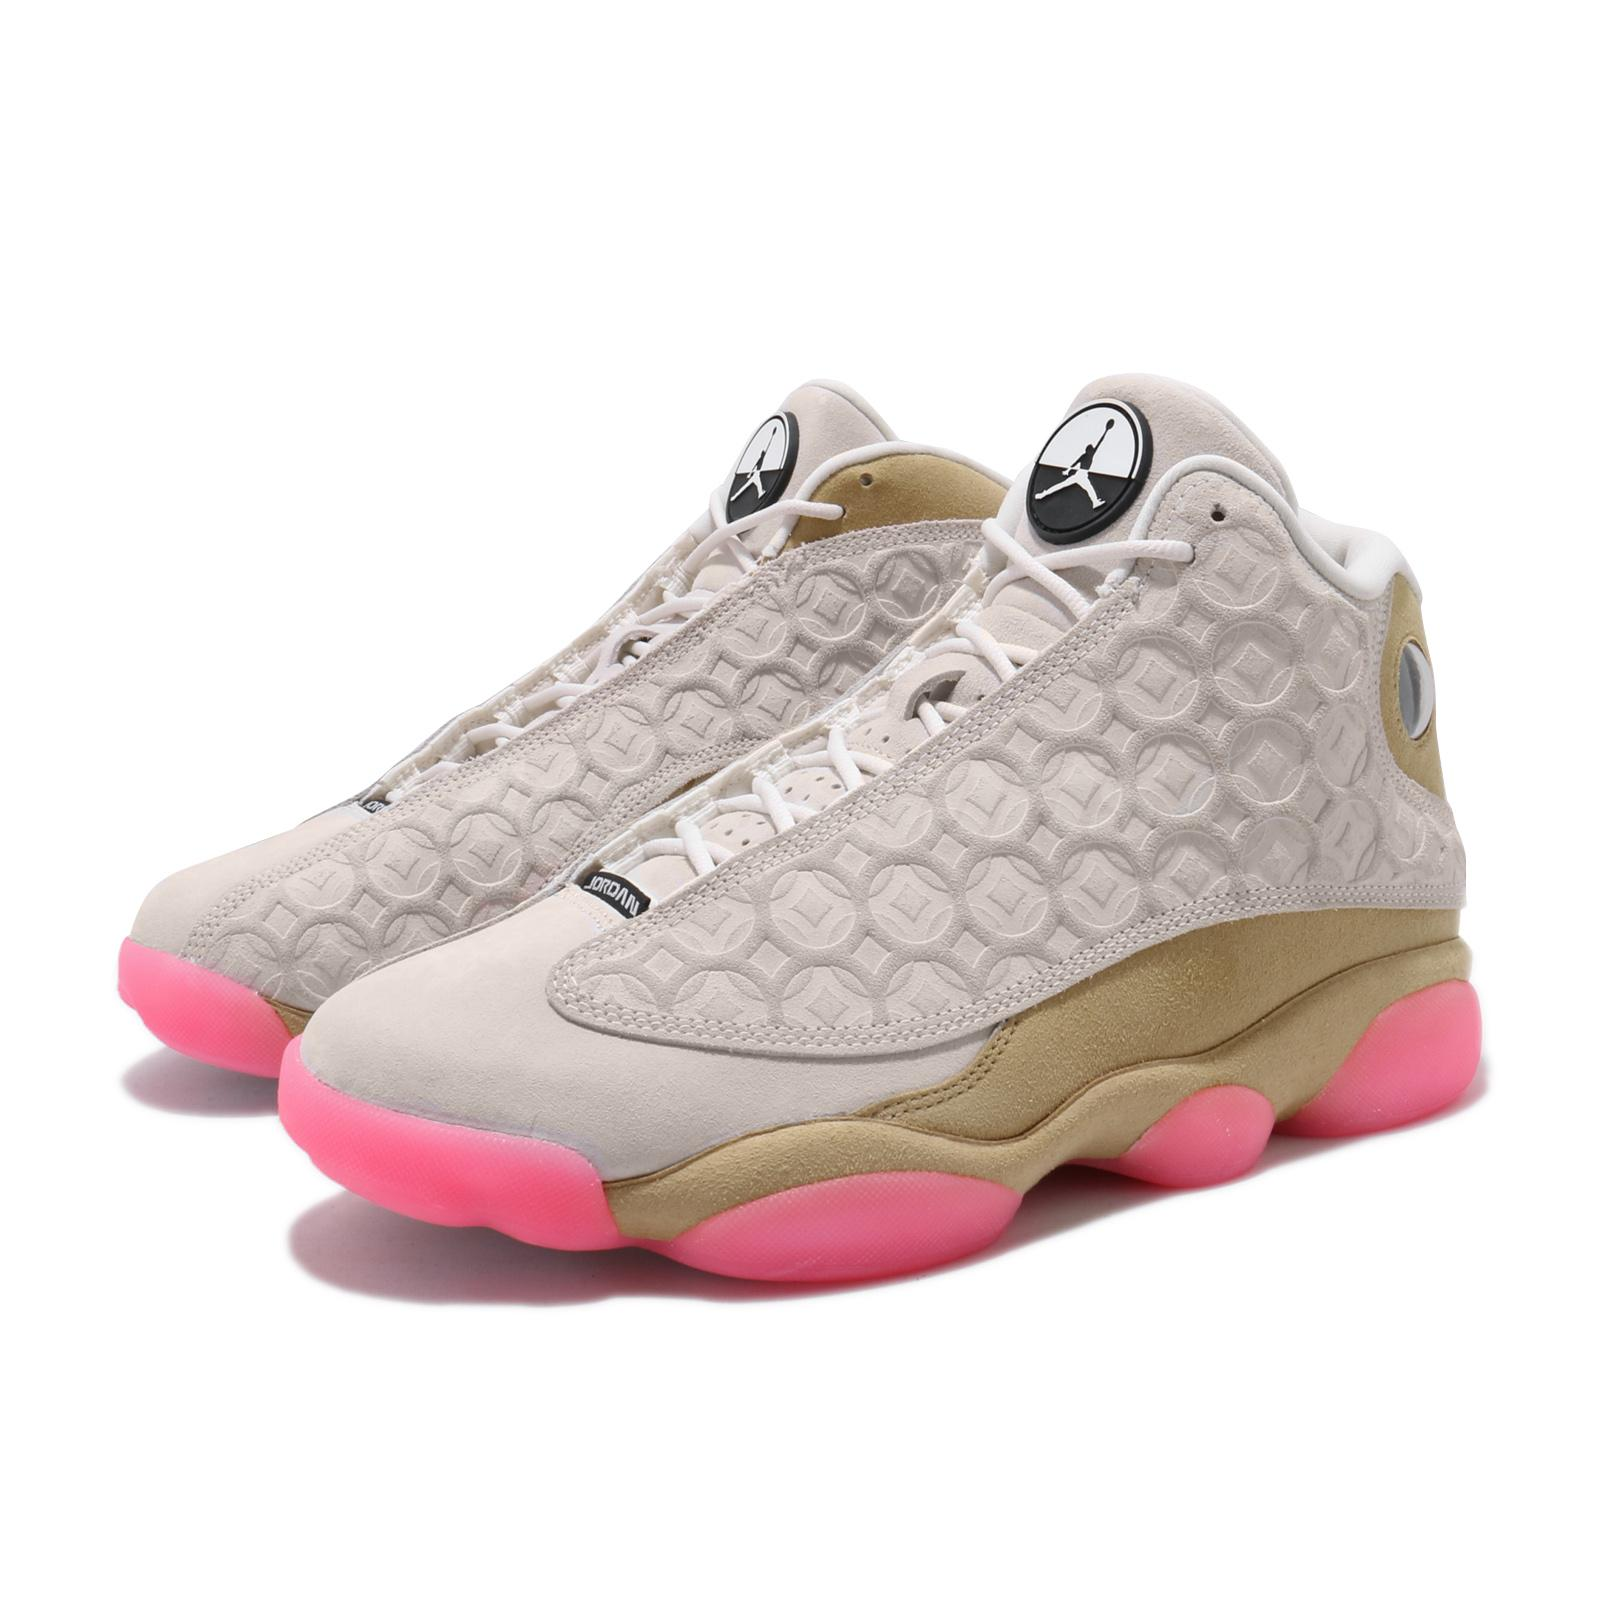 air jordan 13 retro chinese new year shoe